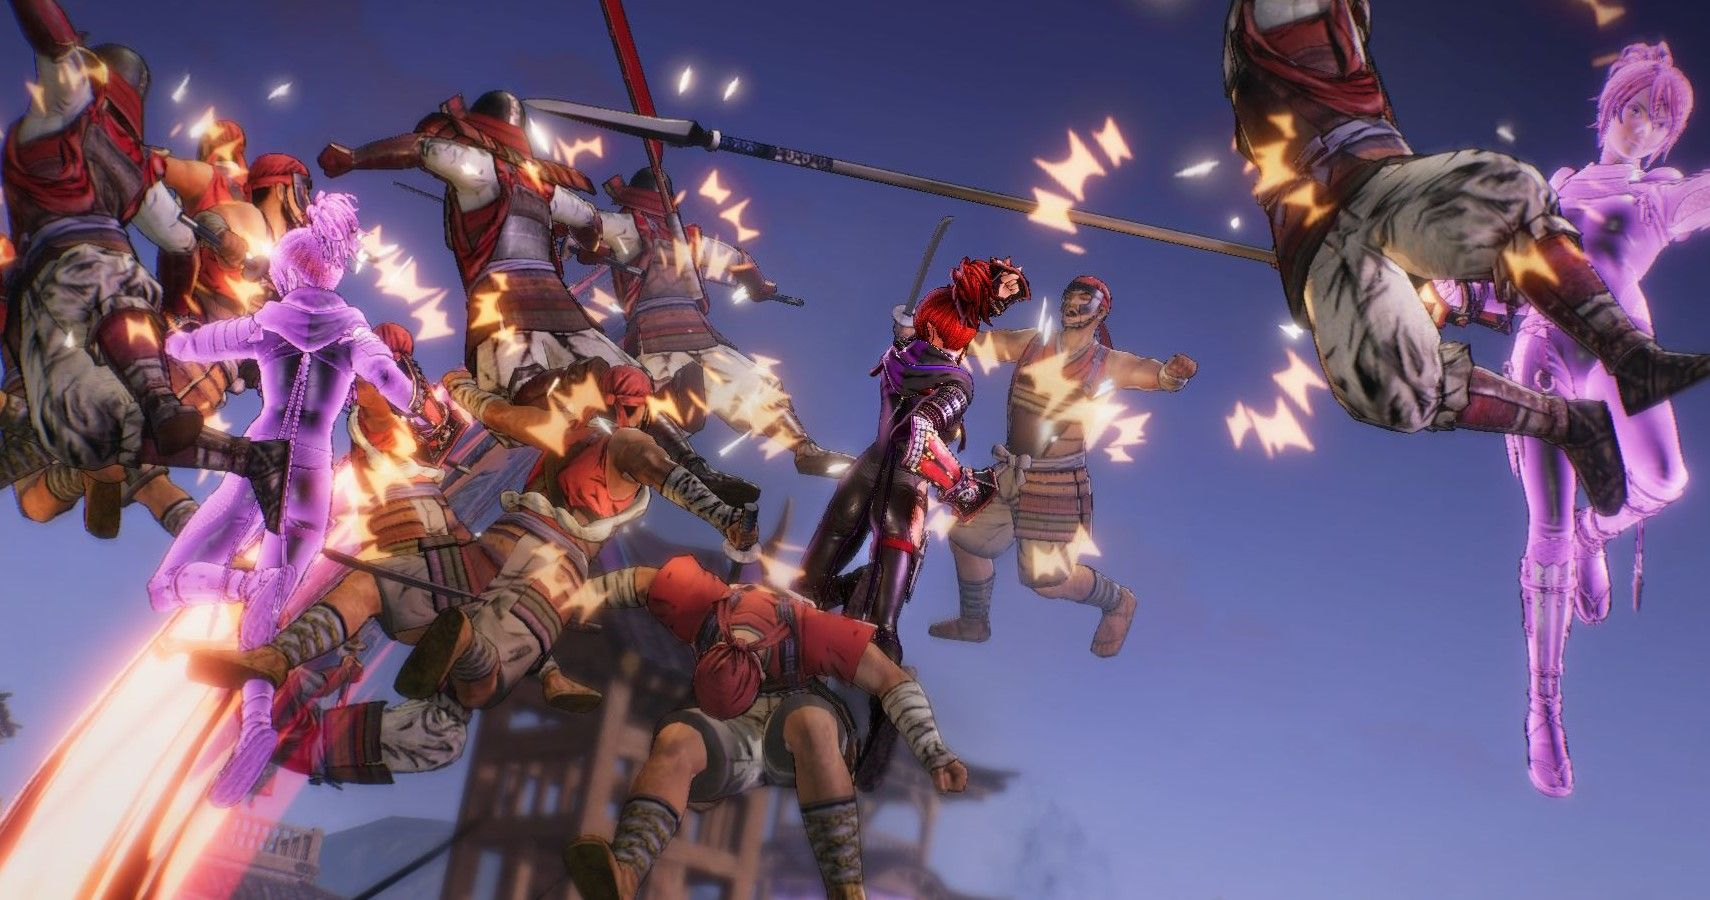 Samurai Warriors 5 Will Have Up To 200 Enemies On Screen, But It's Not The Priority